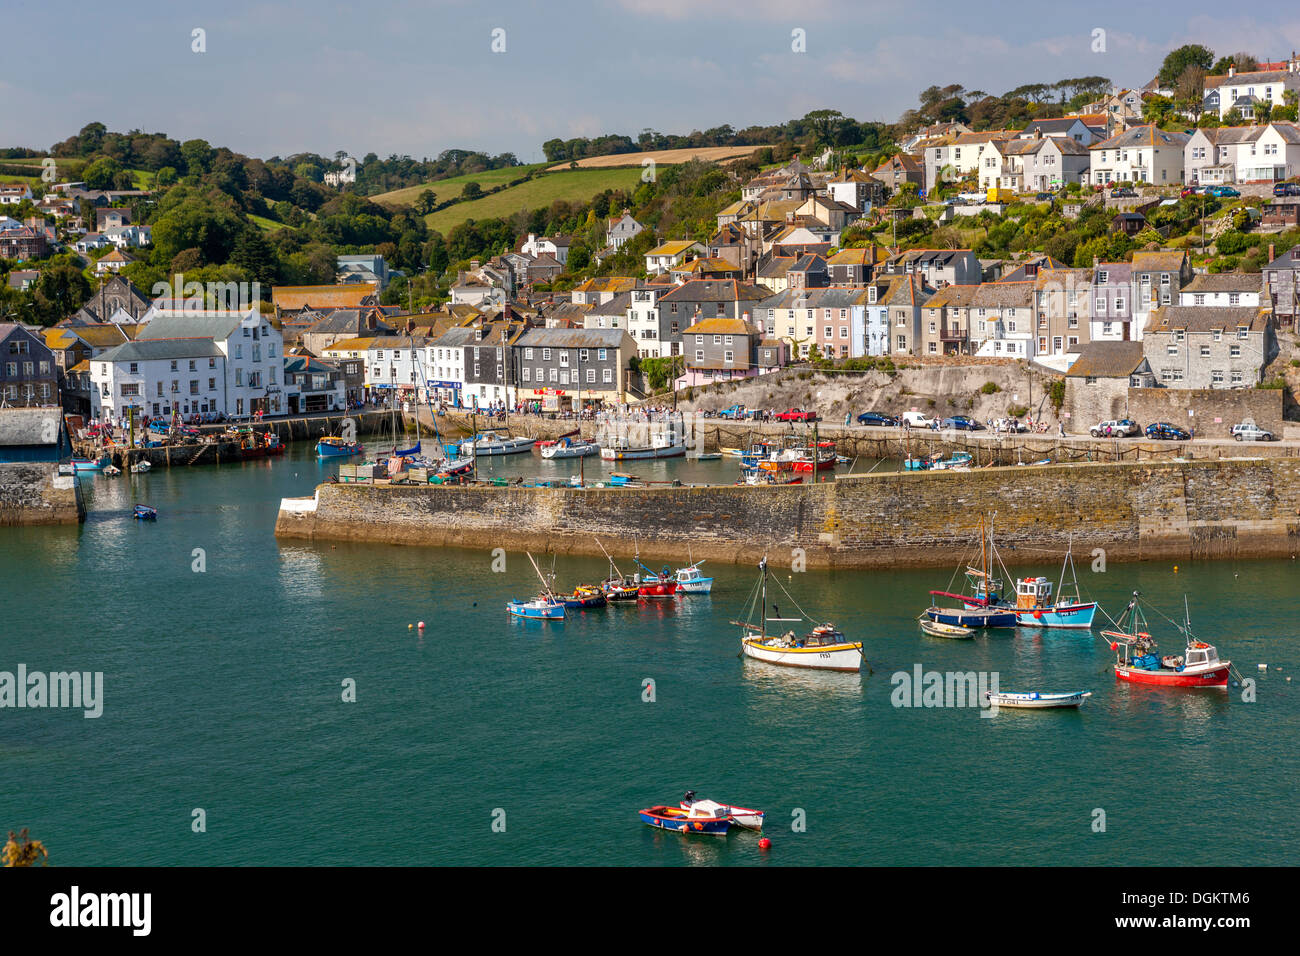 Houses on headland surrounding the old fishing port of Mevagissey. - Stock Image